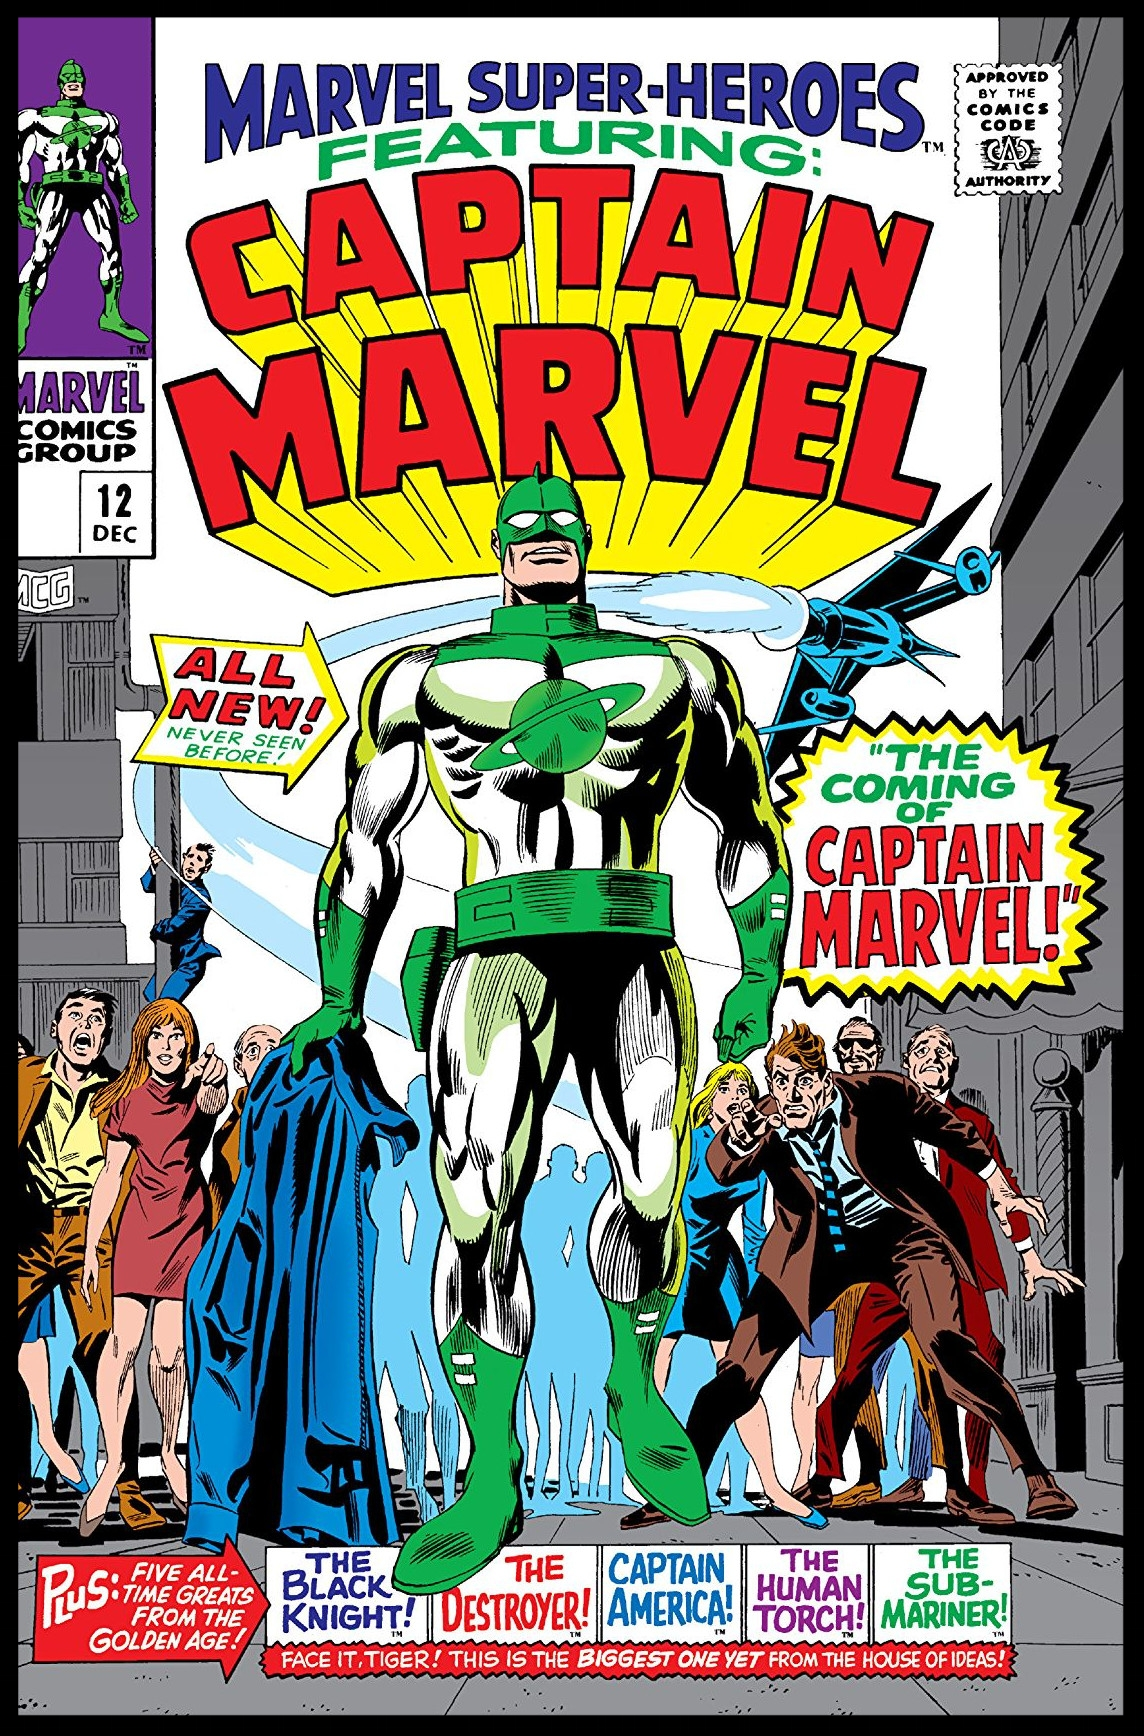 Marvel Super-Heroes #12 Cover